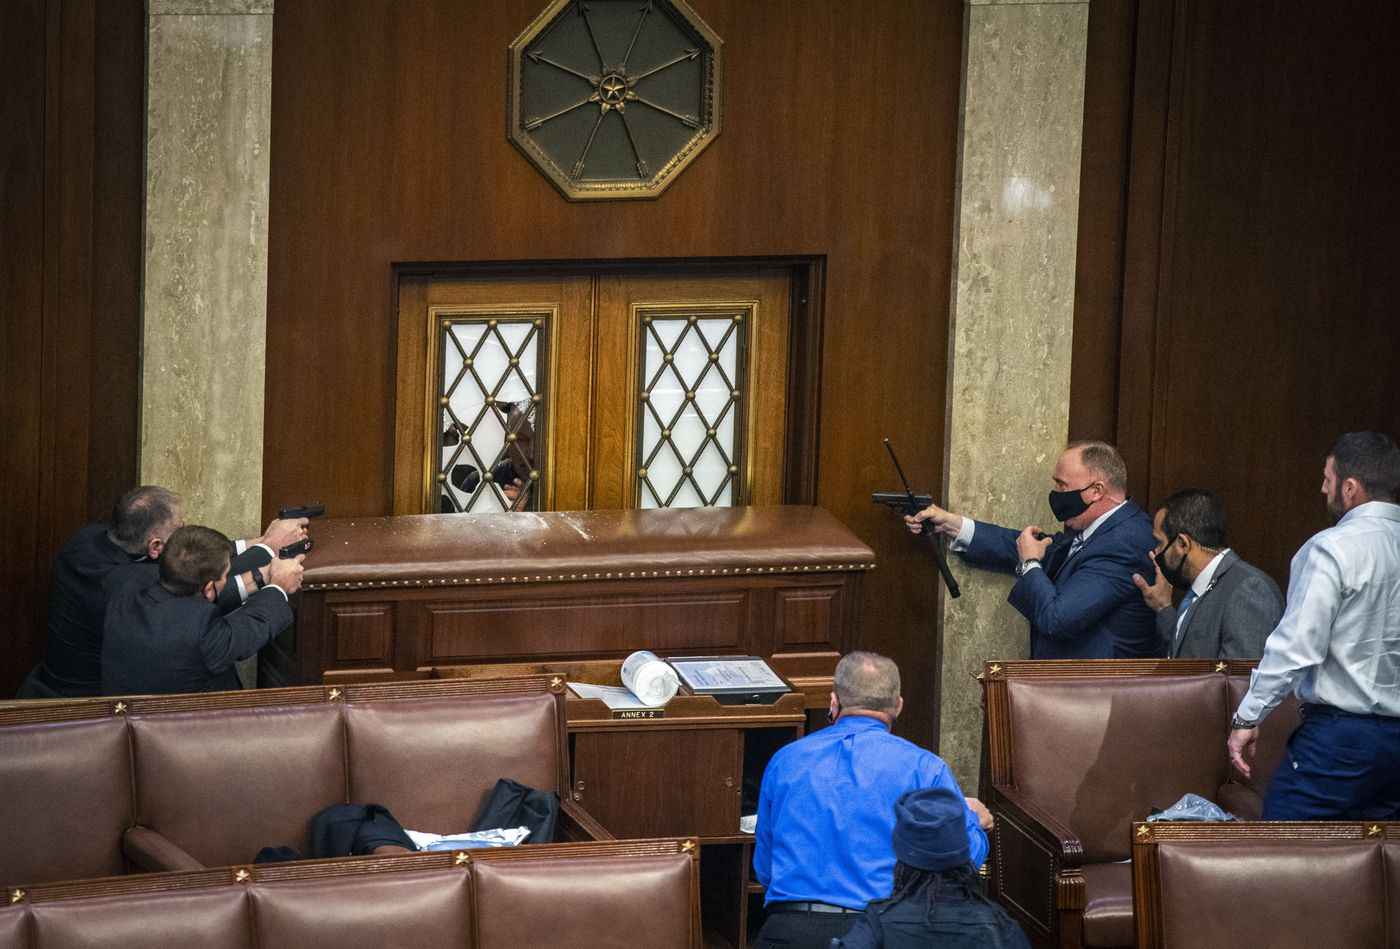 Security officers point weapons at a House chamber door as a mob of rioters storms the Capitol on Wednesday, Jan. 6, 2021. MUST CREDIT: Washington Post photo by Bill O'Leary